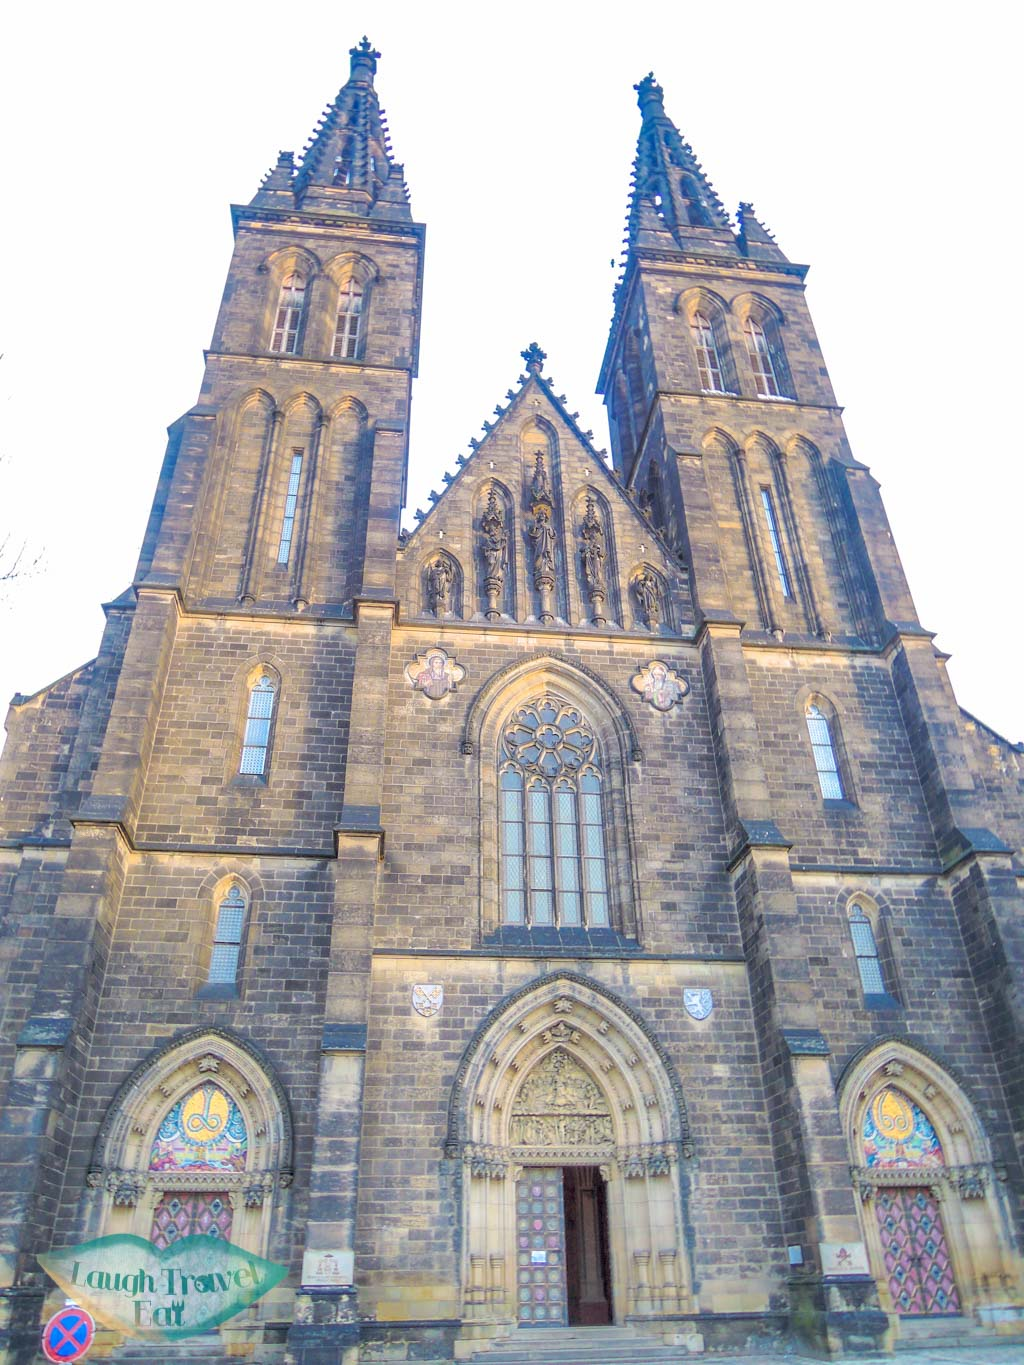 St Peter and Paul ChurchVyshrad Prague Czech Republic Europe - laugh travel eat